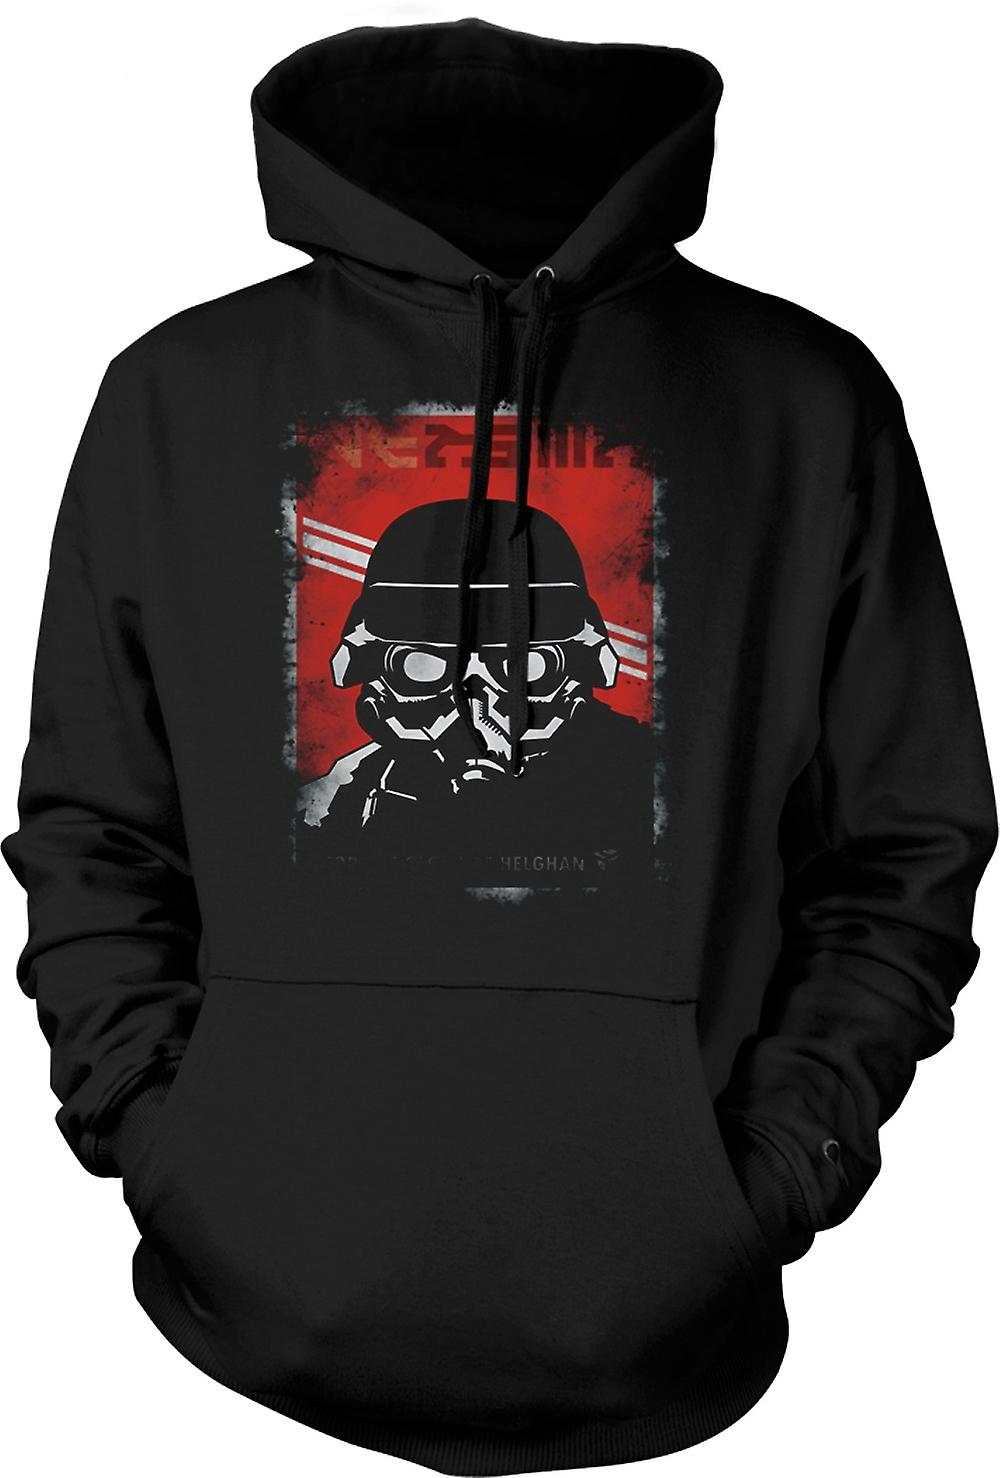 Barn Hoodie - Kill Zone Helgan Gamer